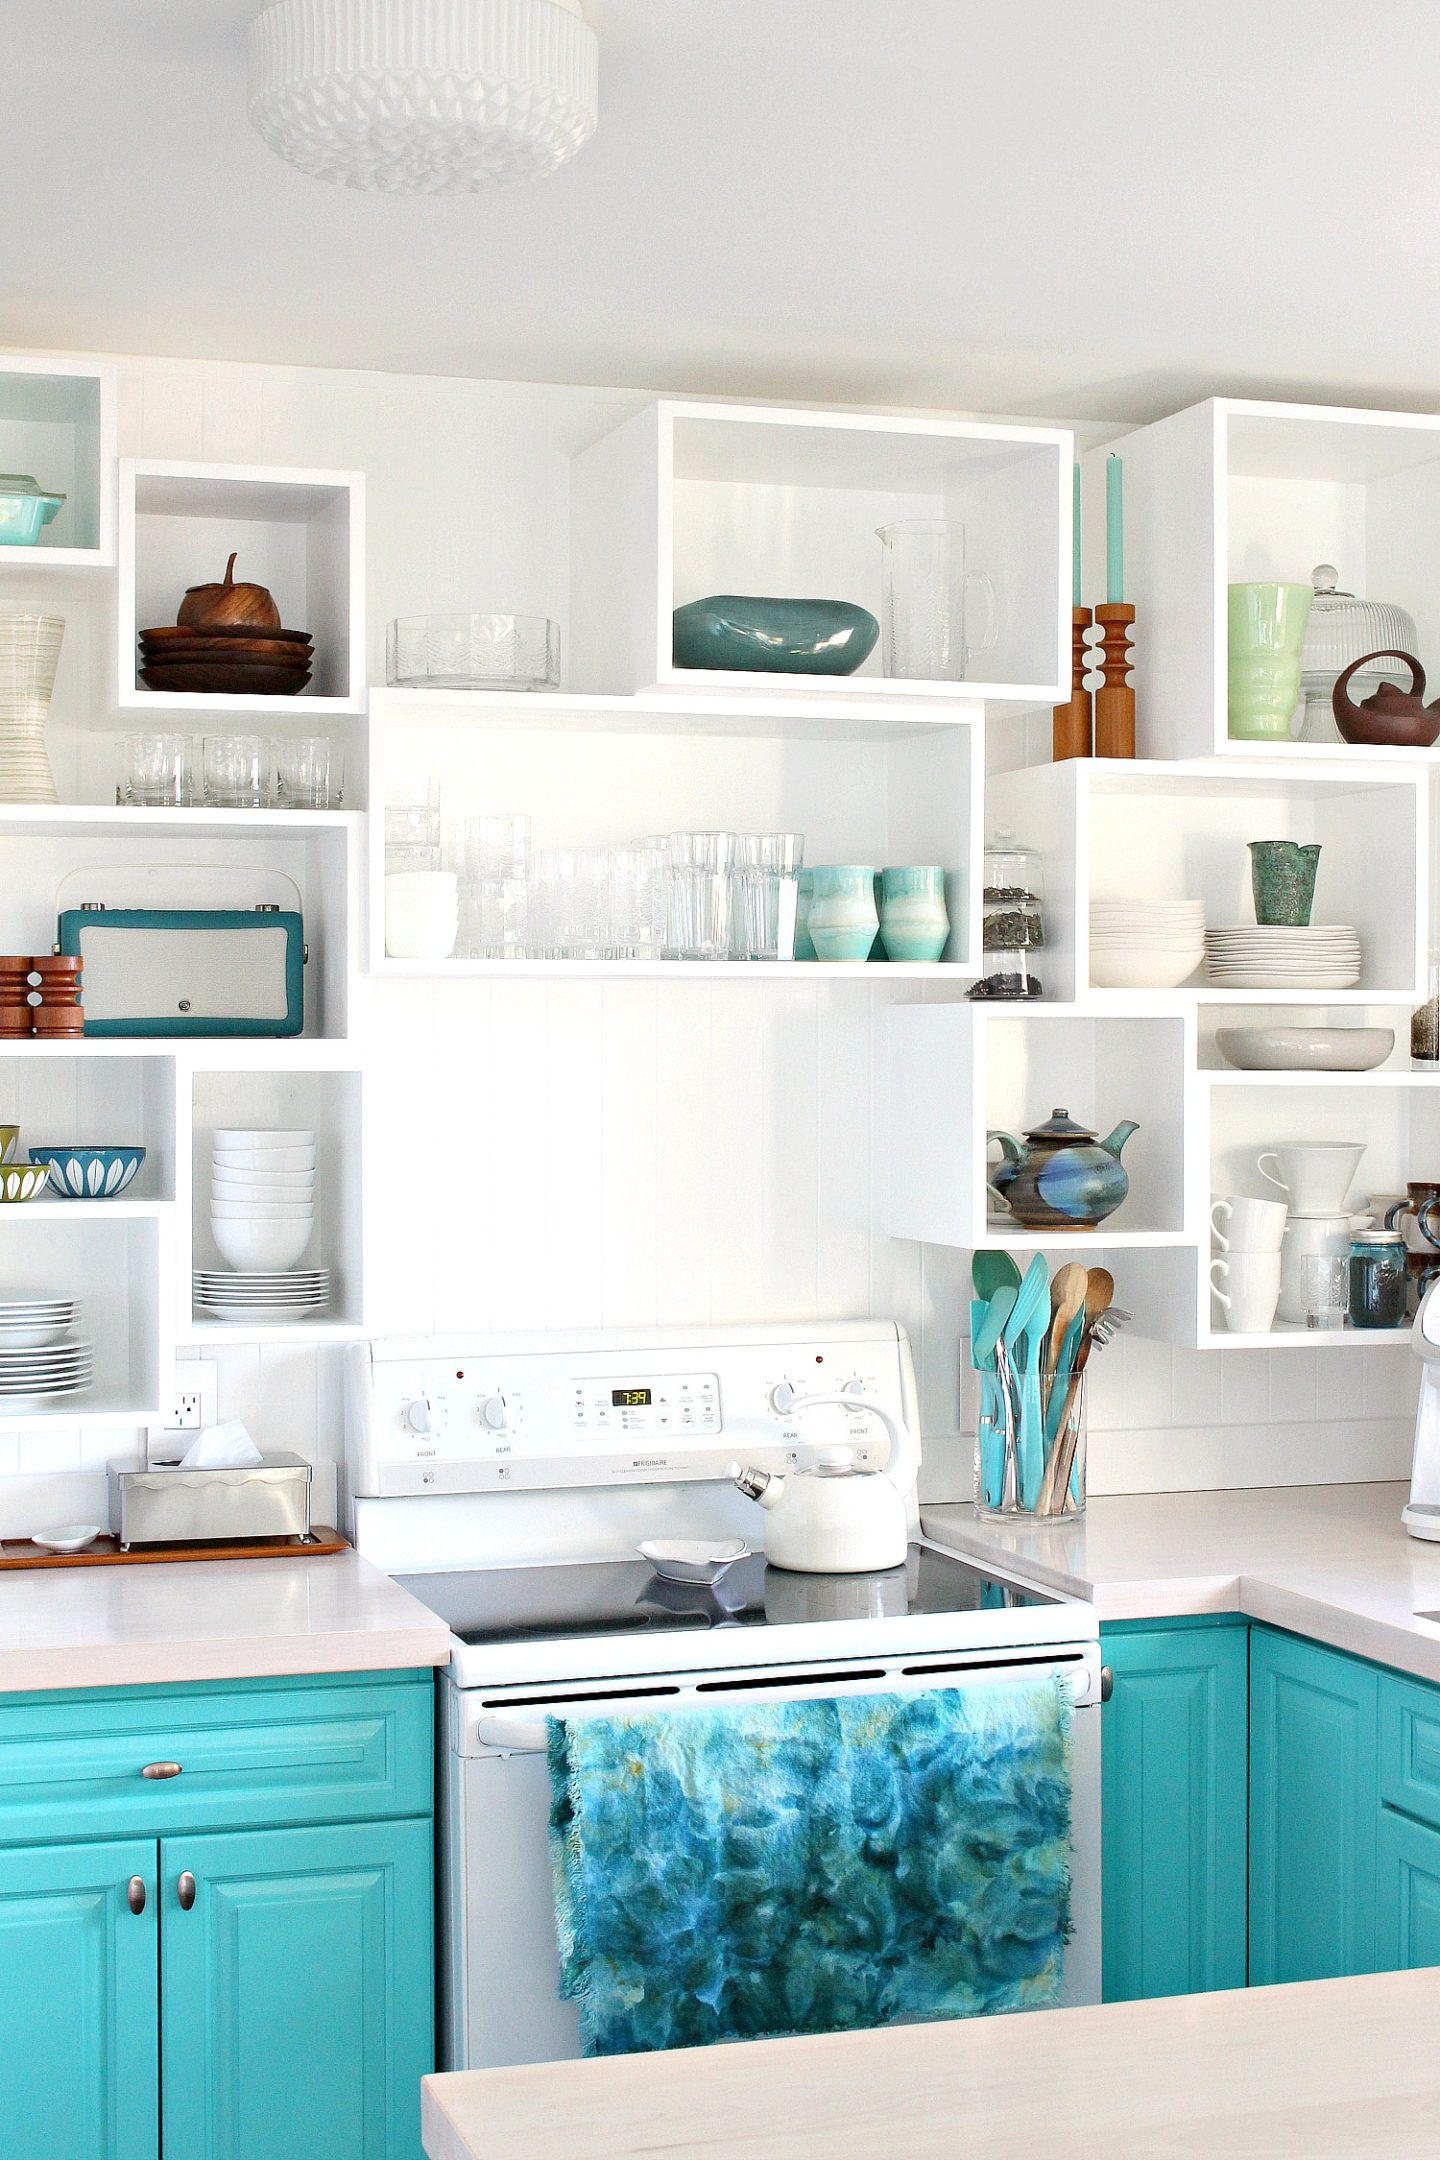 How to Build Wall Cubbies | Fresh Take on Kitchen Open Shelving #colorfulkitchen #turquoise #vintagestyle #vintagedecor